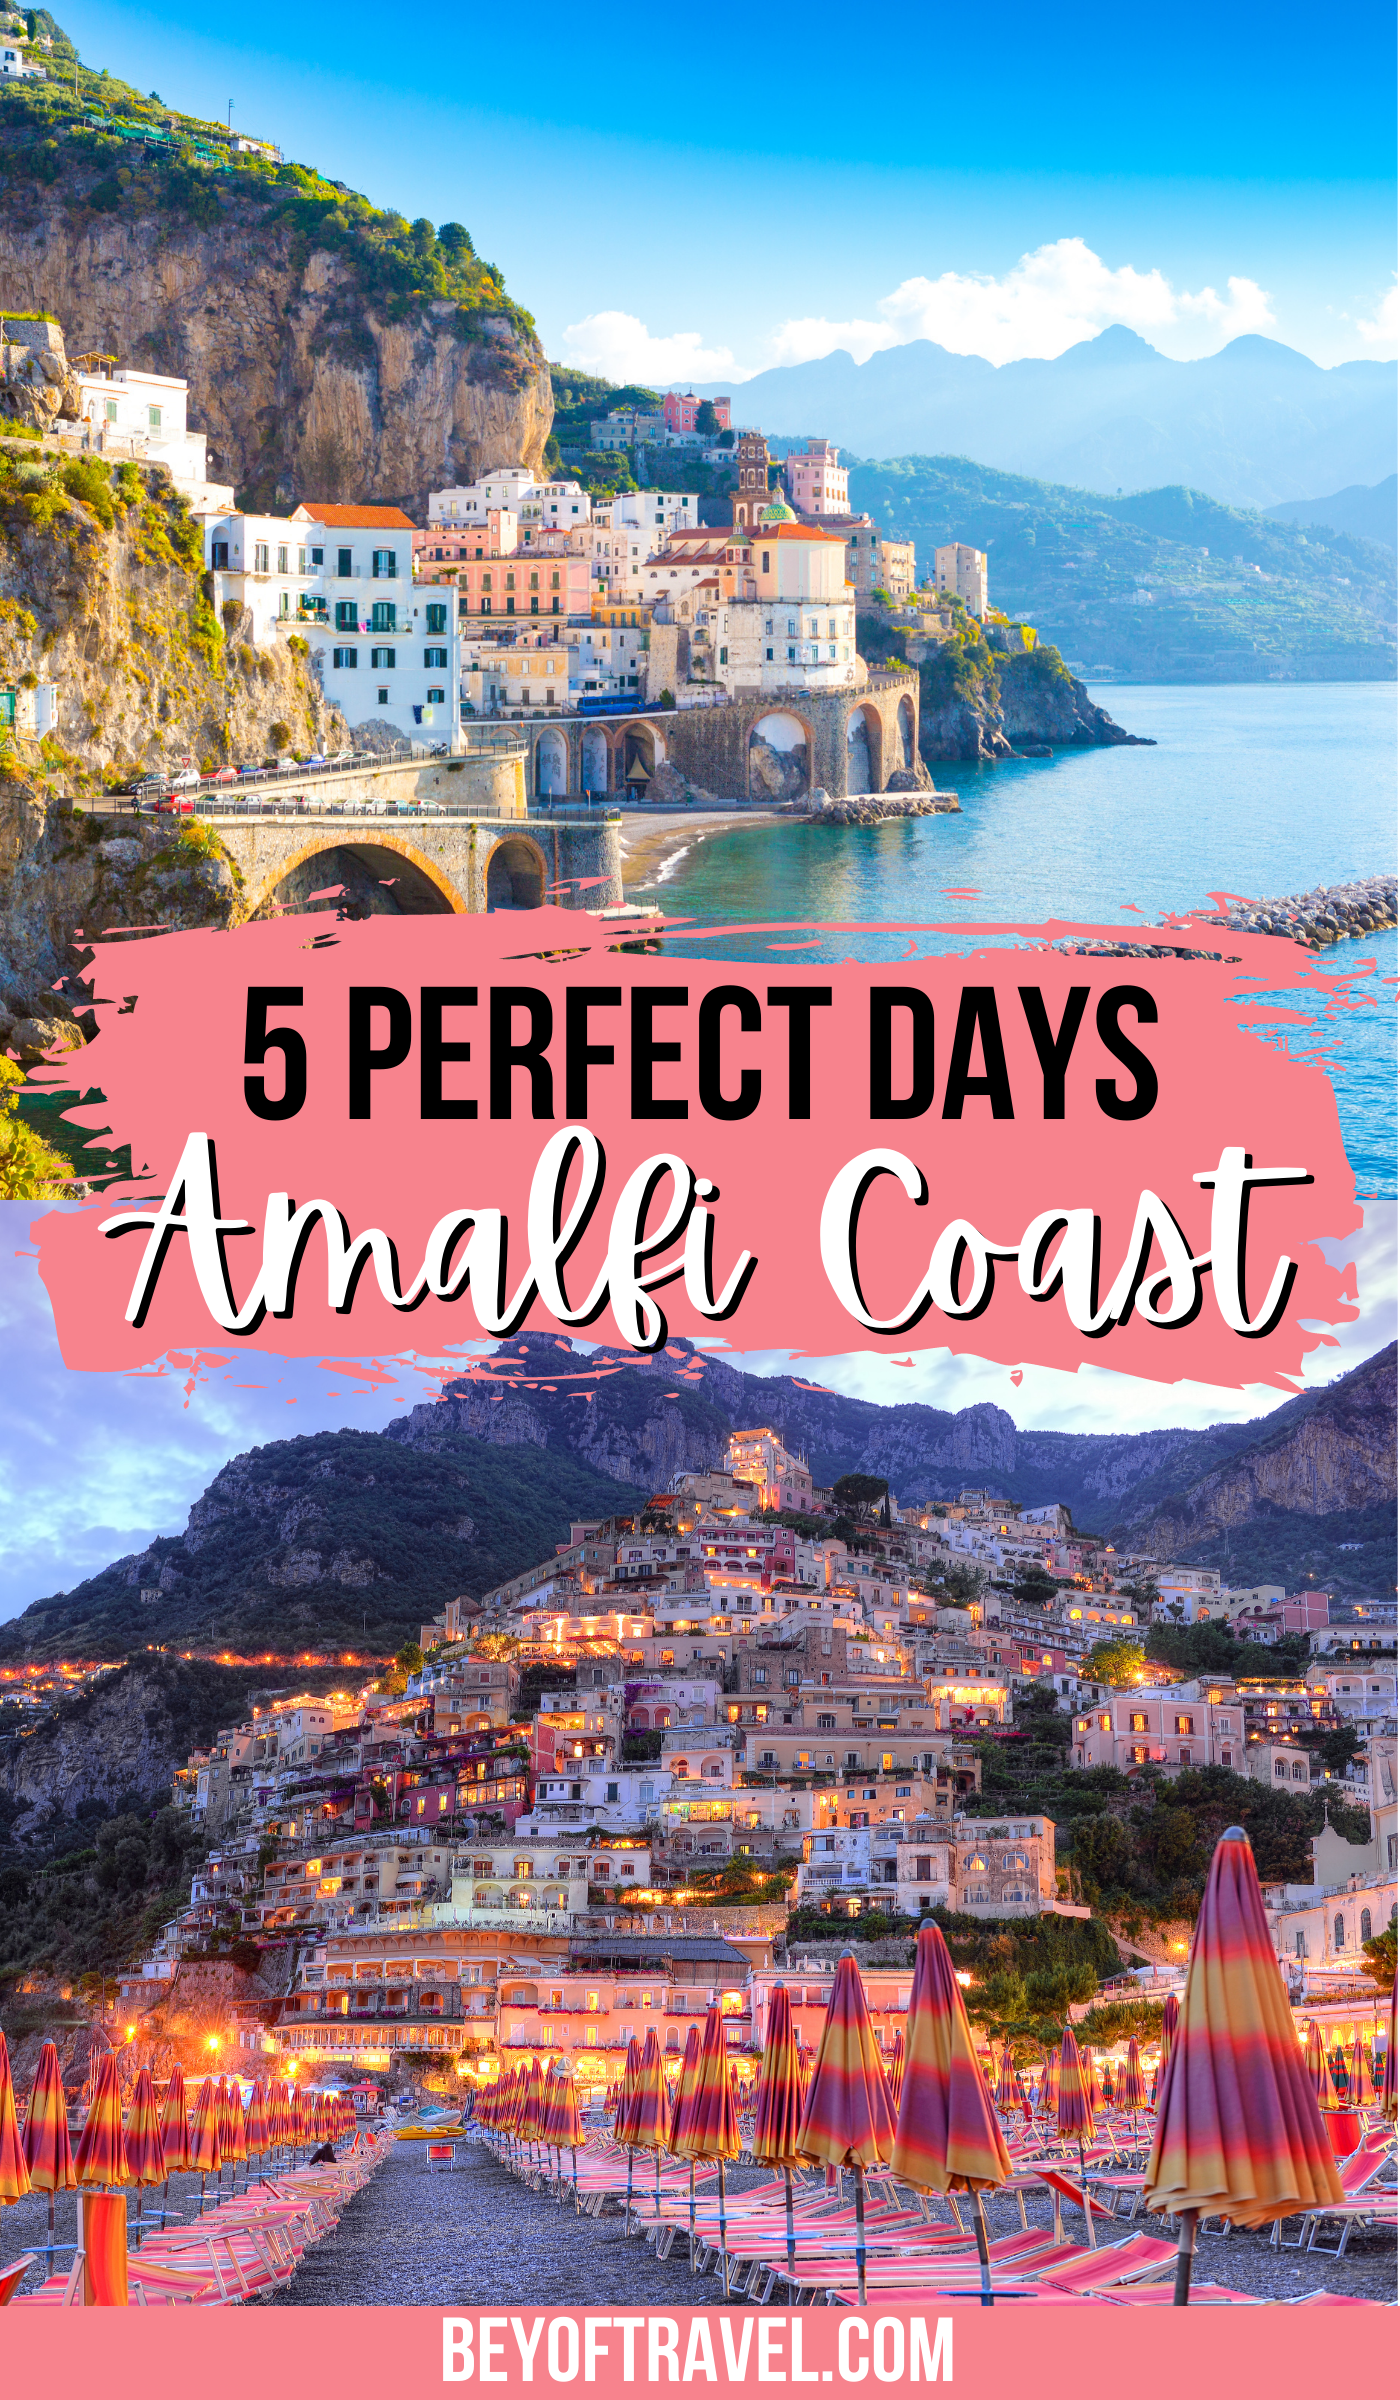 The Perfect 5 Day Amalfi Coast Itinerary